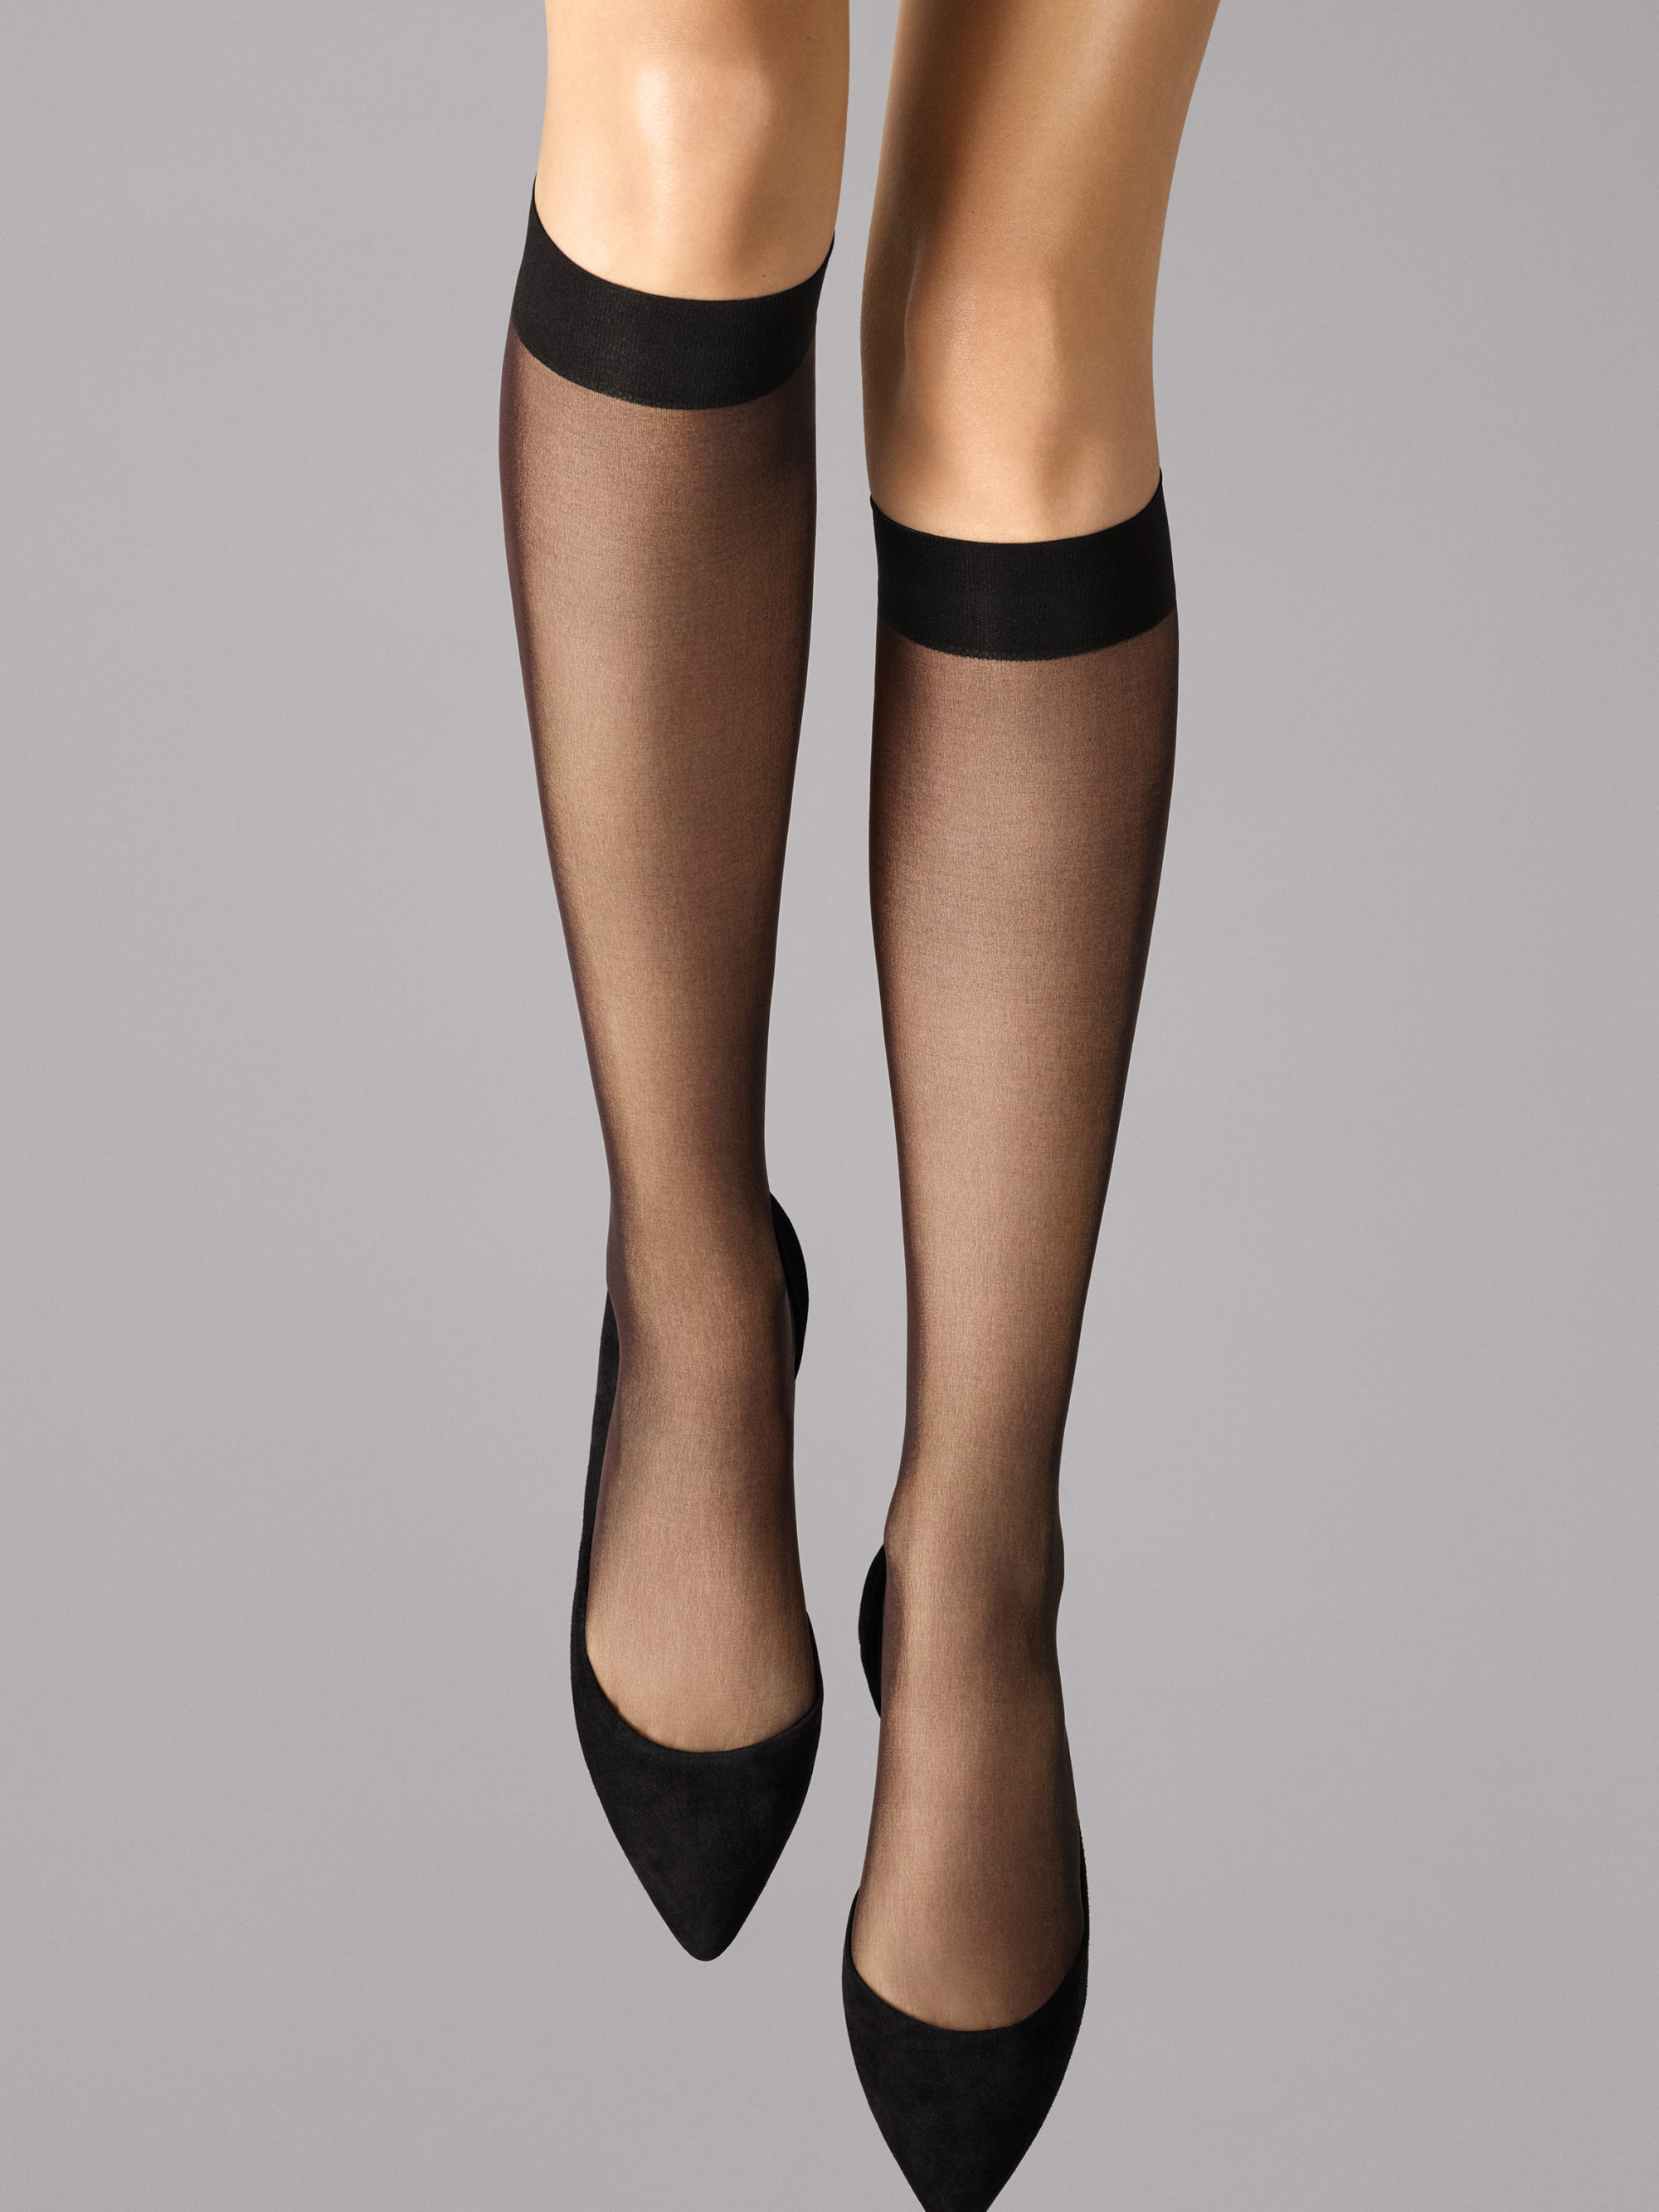 Wolford Satin Touch 20 mibas 2+1gratis